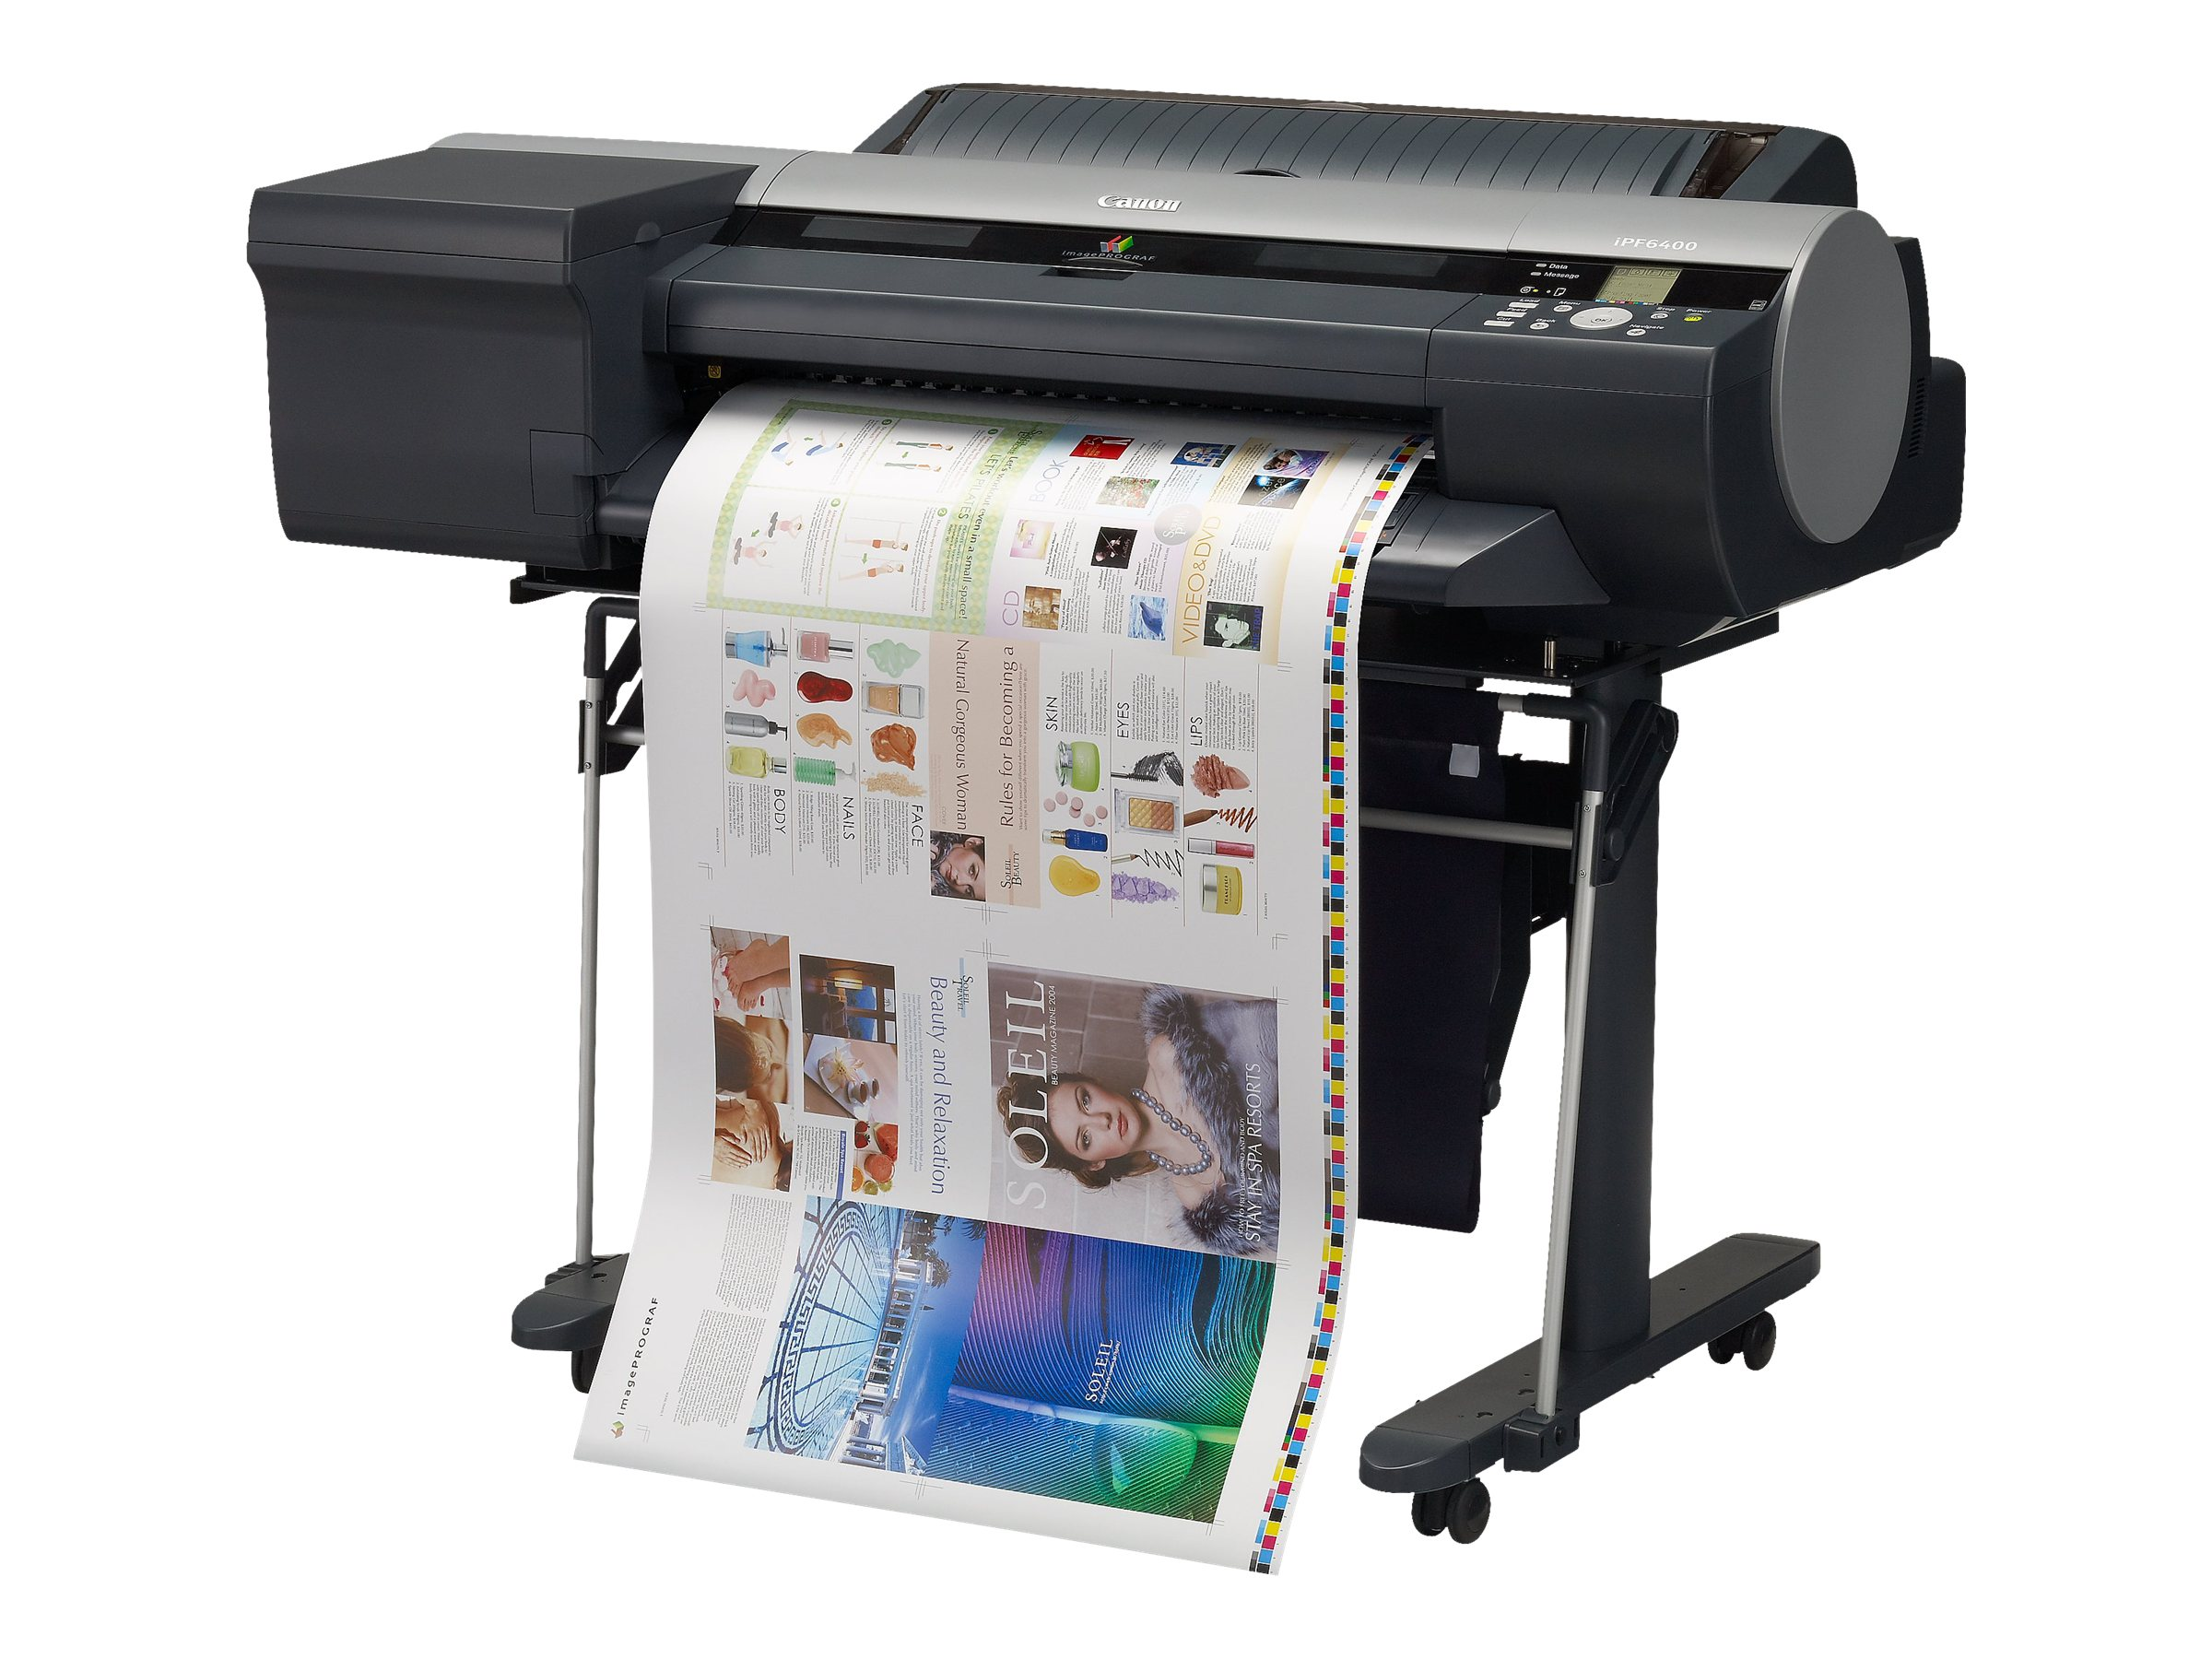 Canon imagePROGRAF iPF6400 Graphic Arts & Photo Printer, 5339B002